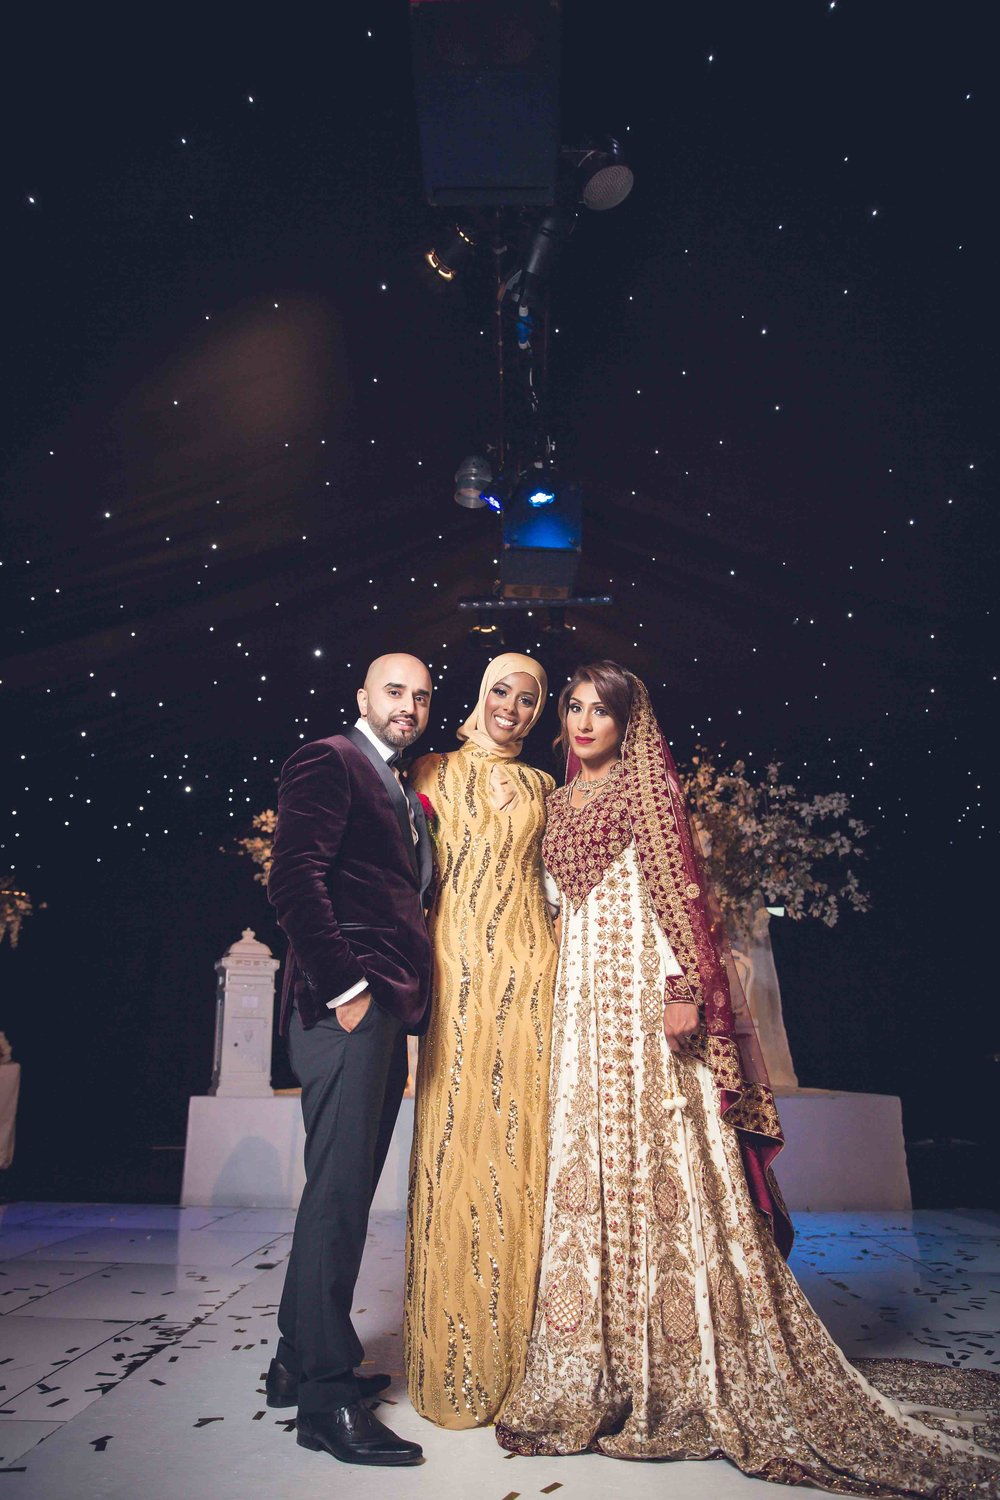 Asian Wedding Photographer Opu Sultan Photography Lyme Park Scotland Edinburgh Glasgow London Manchester Liverpool Birmingham Wedding Photos prewed shoot Azman & Saira Blog-158.jpg